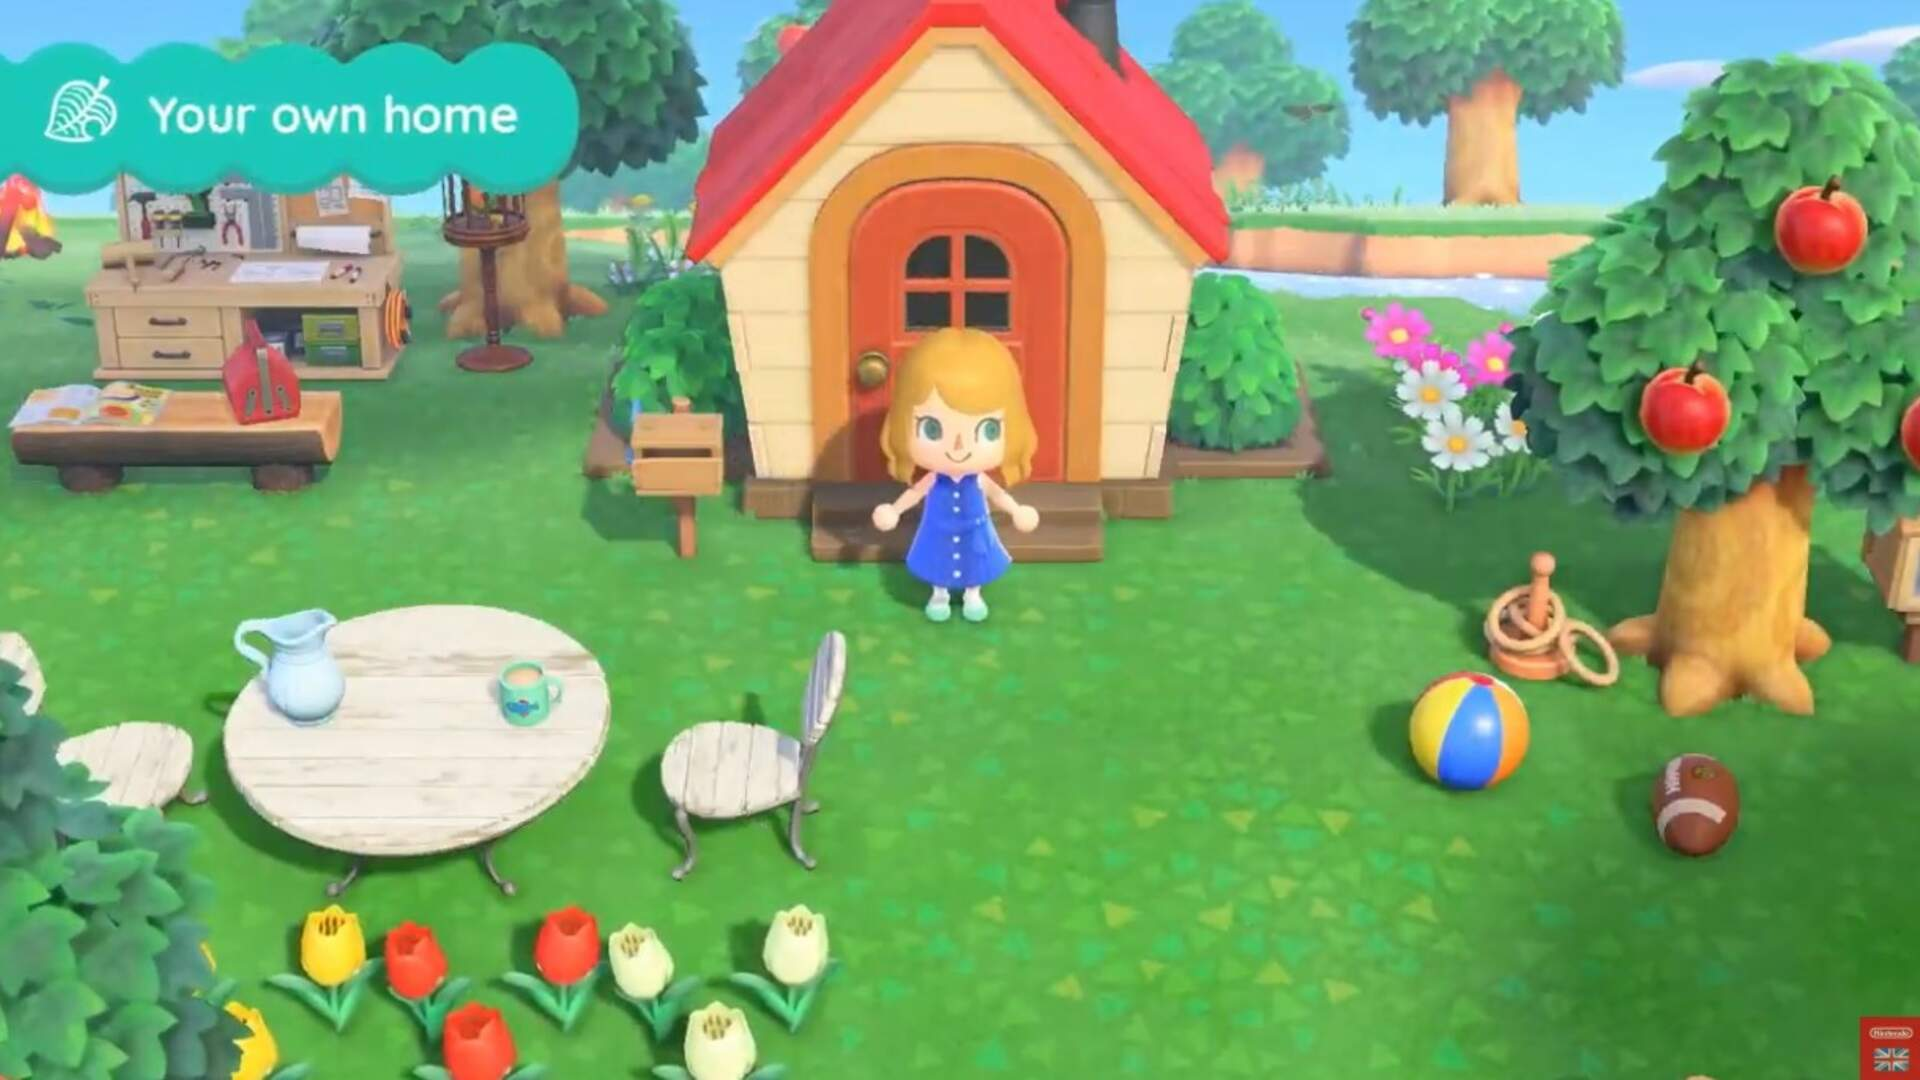 Animal Crossing New Horizons: How to Get a House